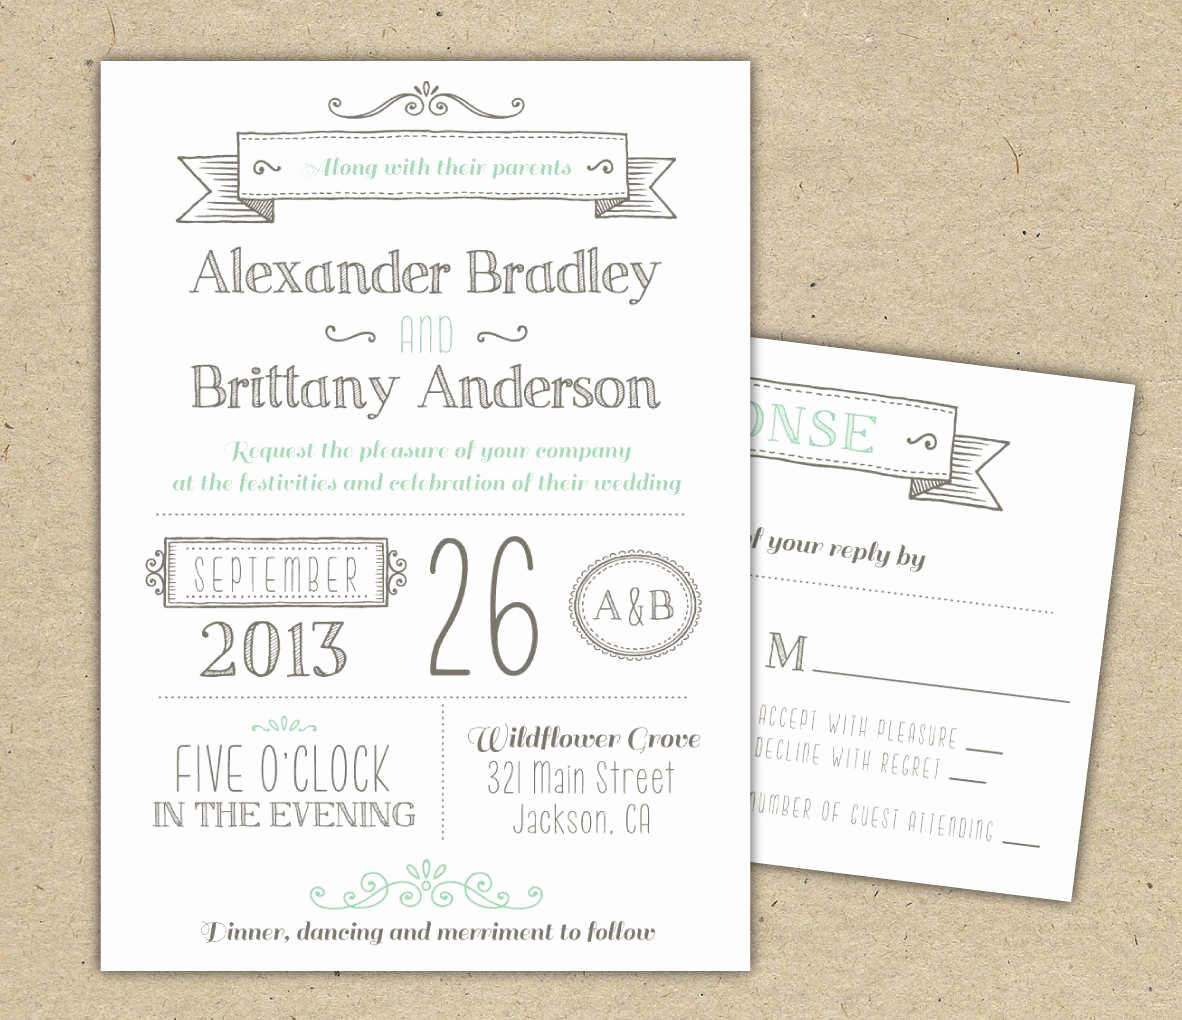 Wedding Invitation Design Templates Luxury Wedding Invitations Template Free Download